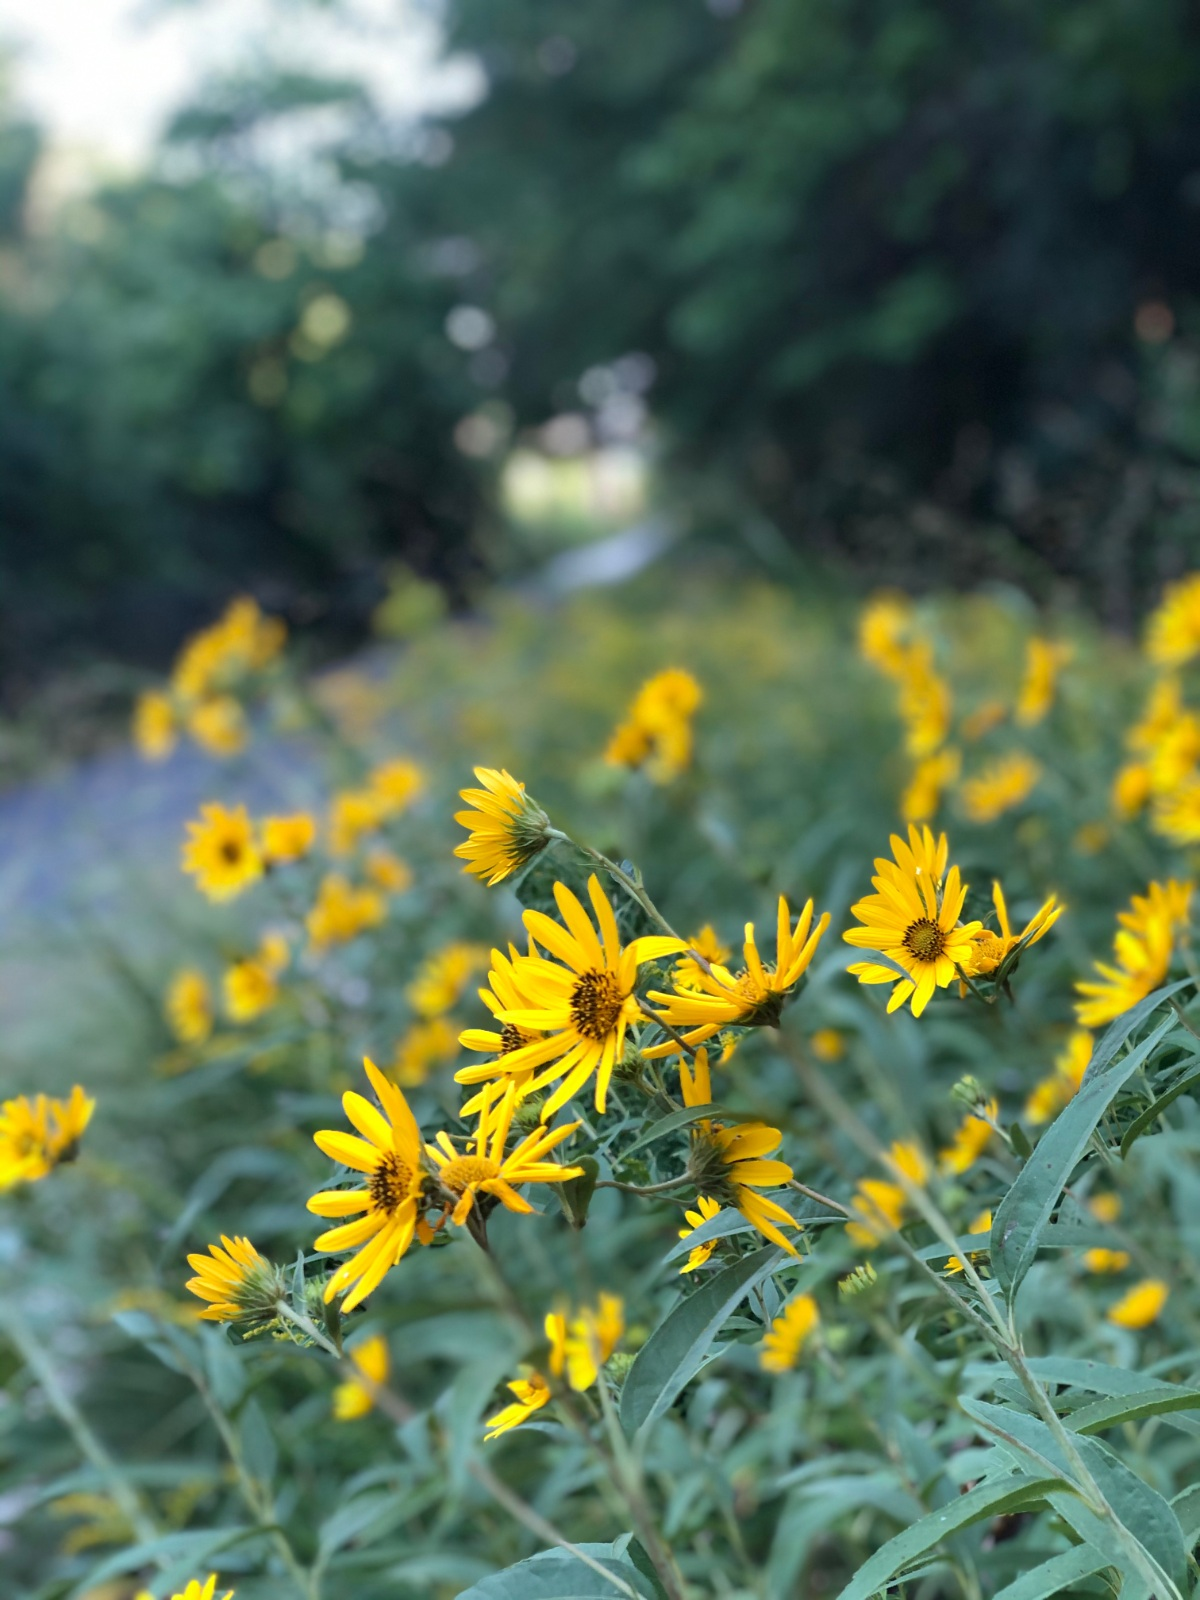 Enjoying the flowers along the trail on the last day of August.